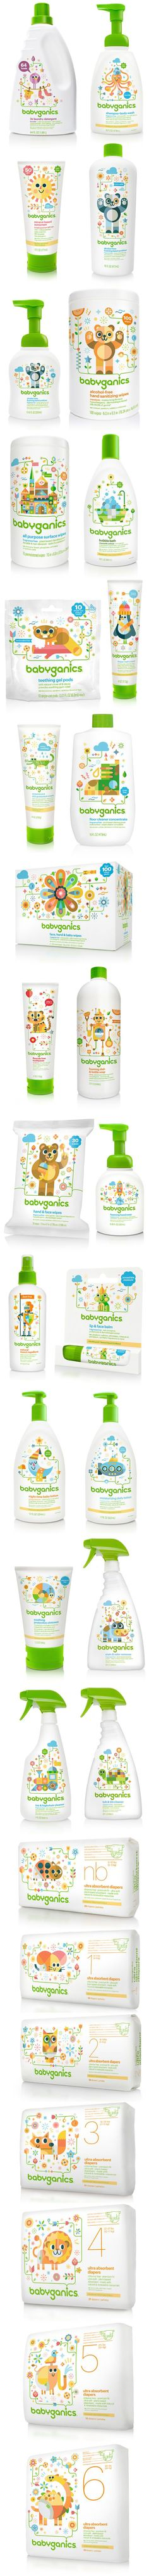 Check out this gorgeous #plastic #packaging for BabyGanics products.: